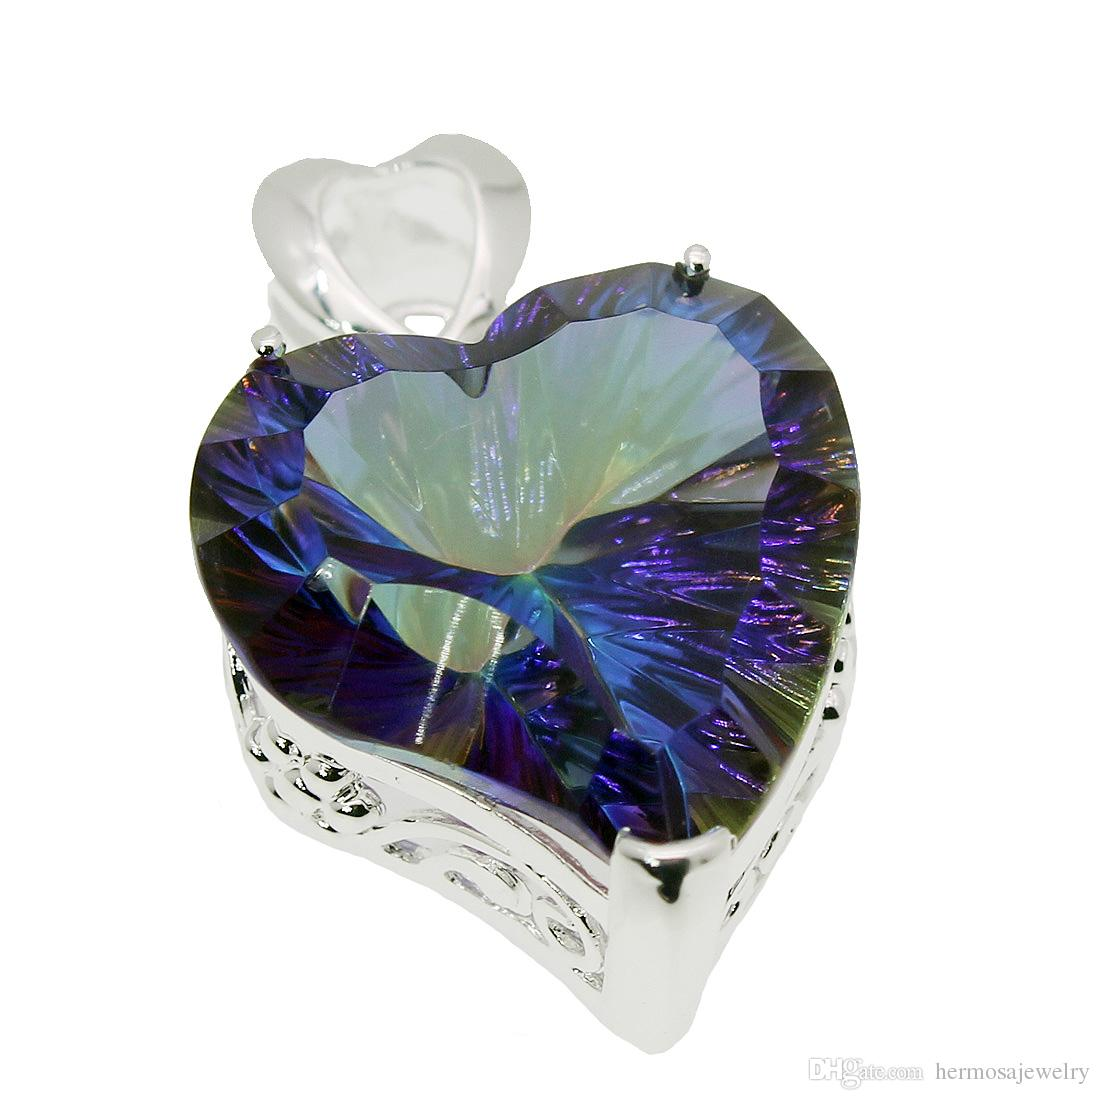 "Heart Pendants Necklace 925 Sterling Silver Rainbow Fire Mystic Topaz Hermosa Women Charms Jewelry 1 1/4"" INCH"